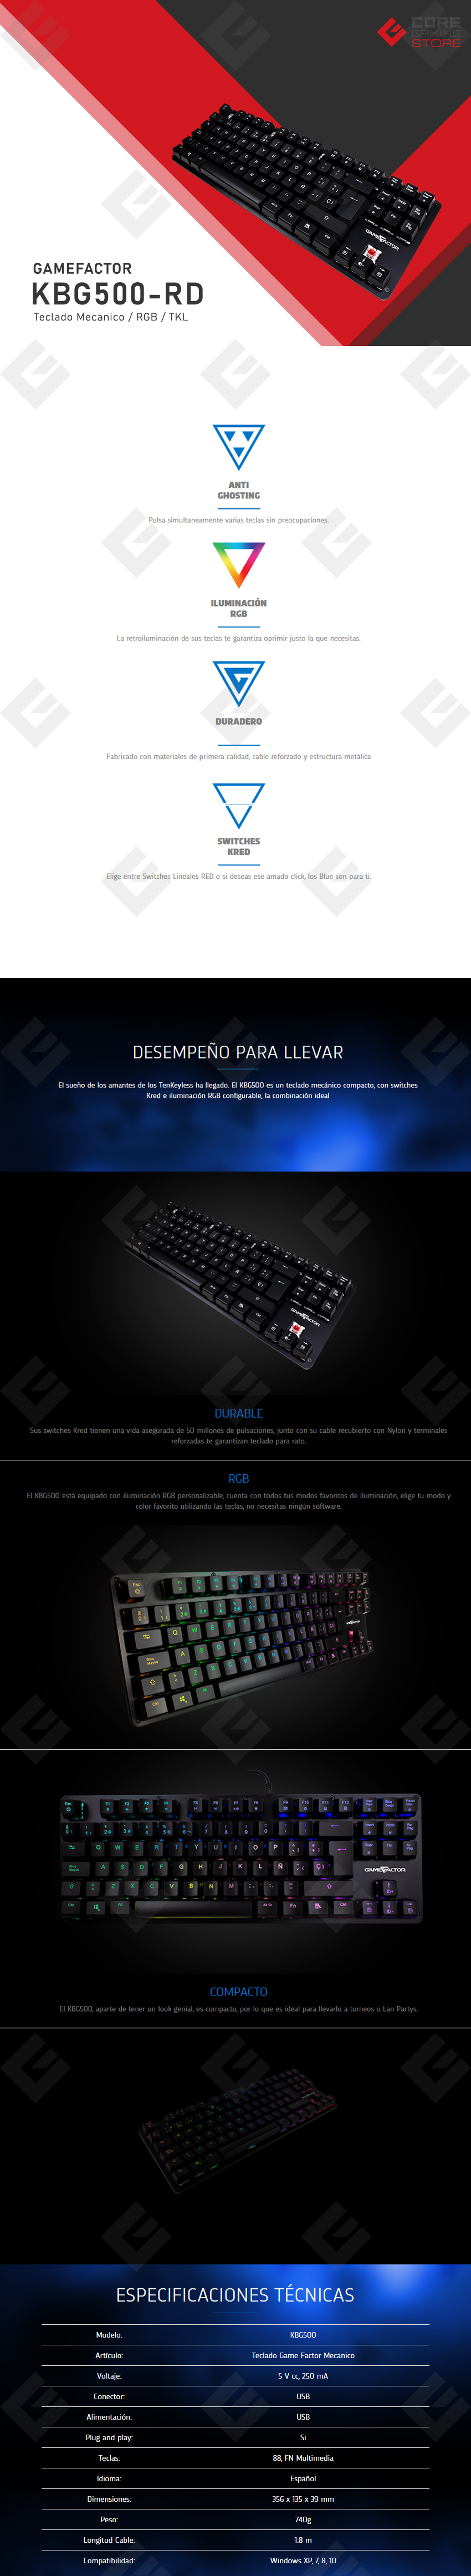 Teclado Mecanico GameFactor KBG500, TKL, Switch Red, RGB - KBG500-RD